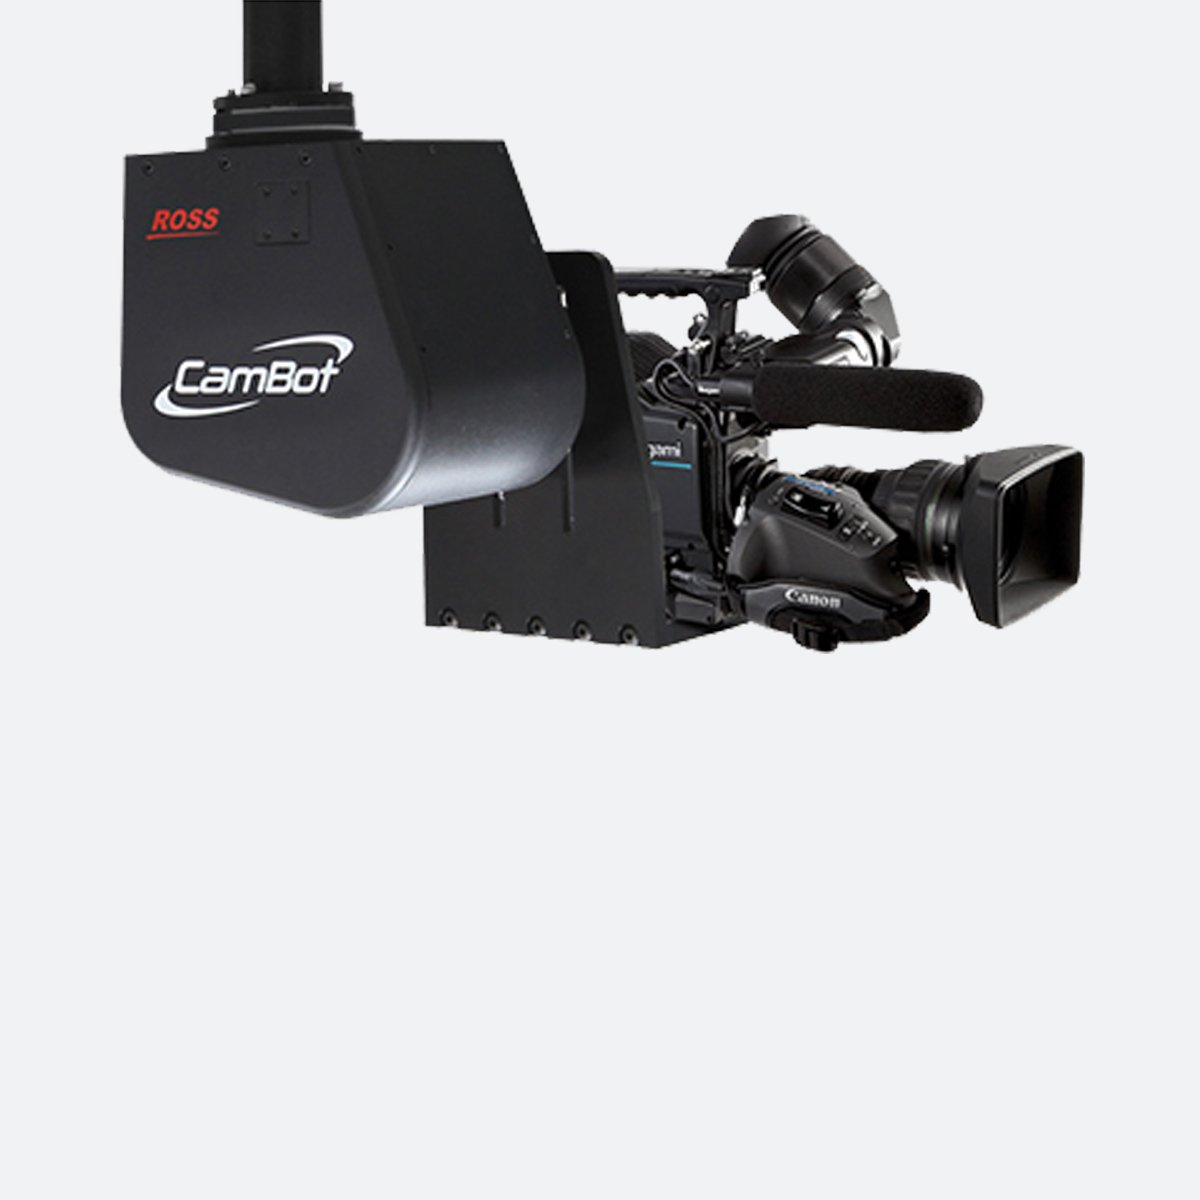 Ross CamBot robotic camera